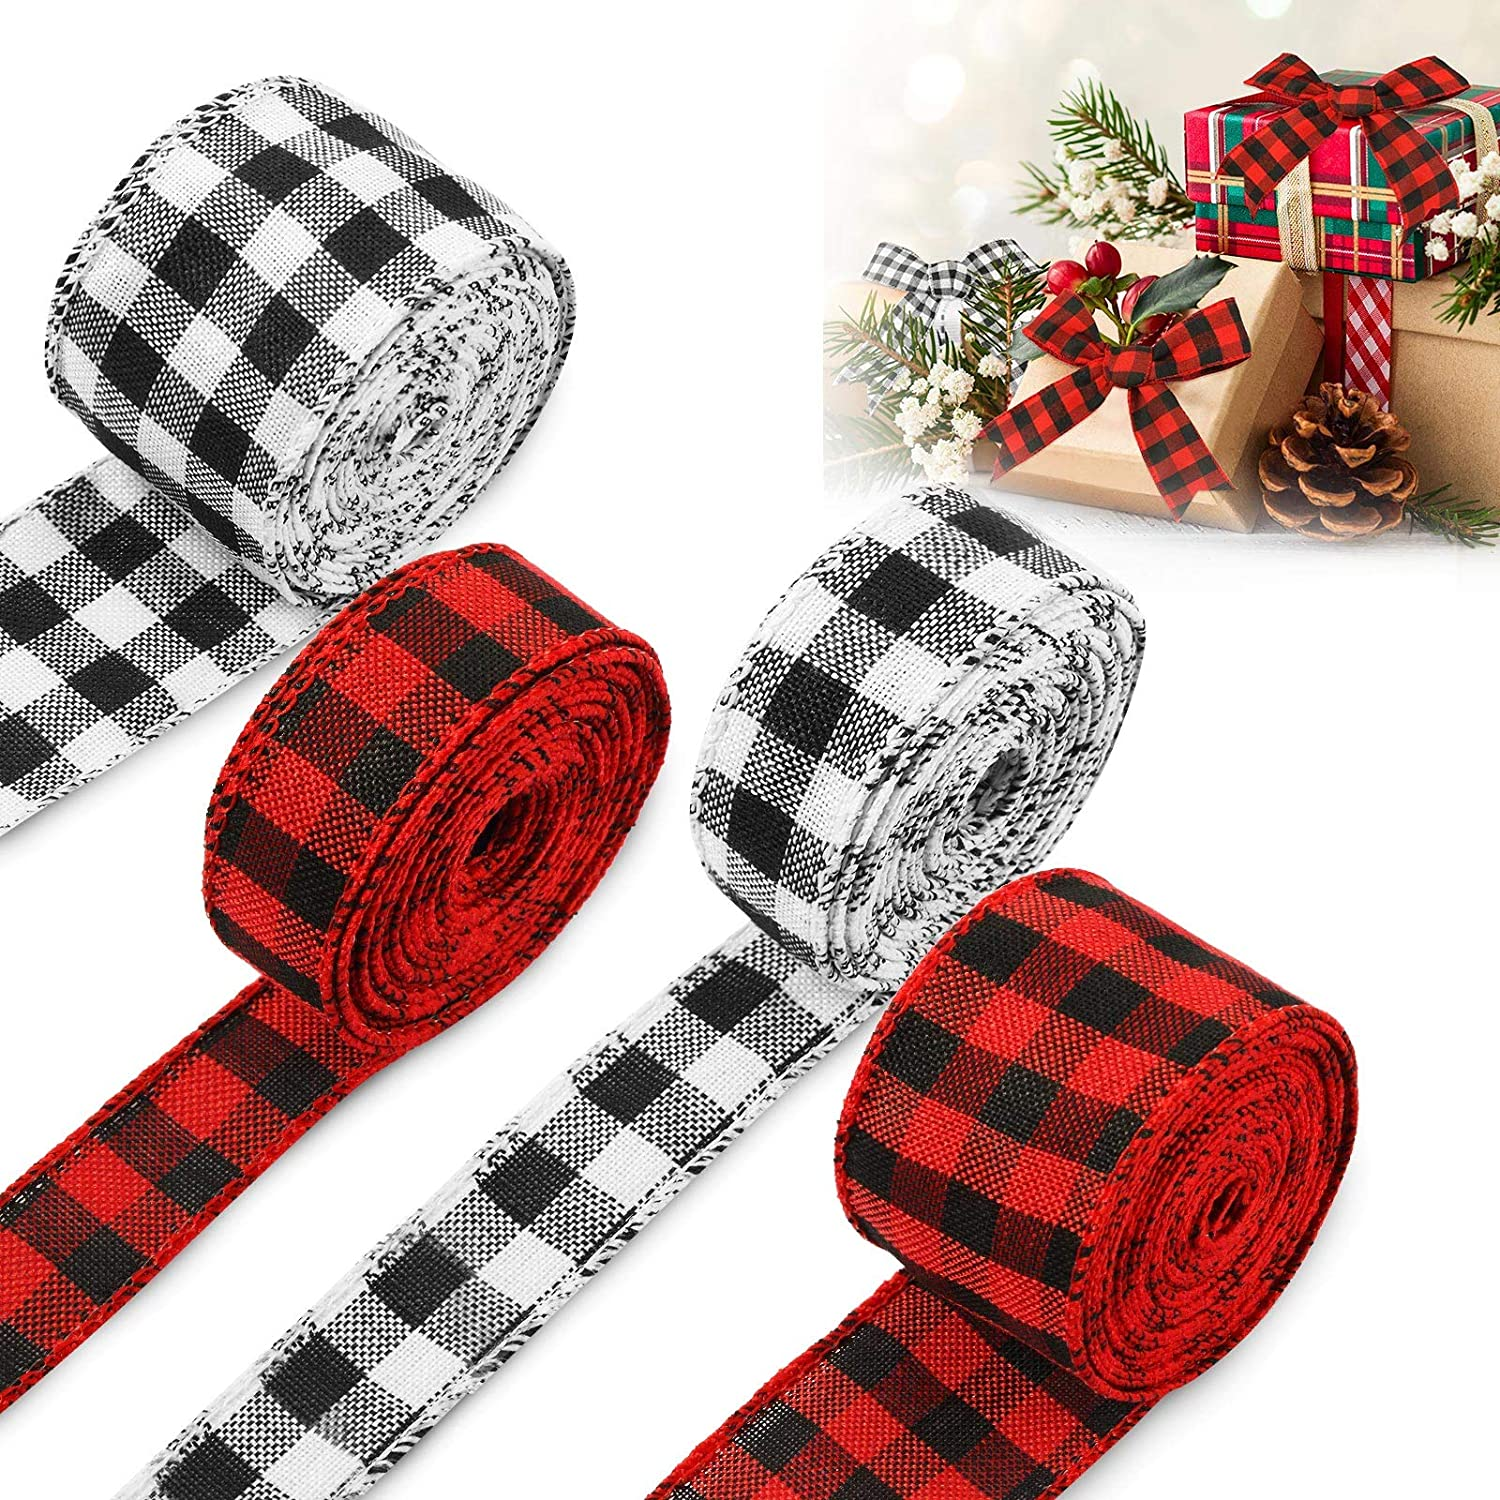 4 Rolls Christmas Checkered Wired Edge Ribbons Buffalo Plaid Ribbons Gingham Wrapping Ribbon for Christmas Crafts Wrap Decoration, Totally 26 Yards, Red and Black Plaid, White and Black Plaid